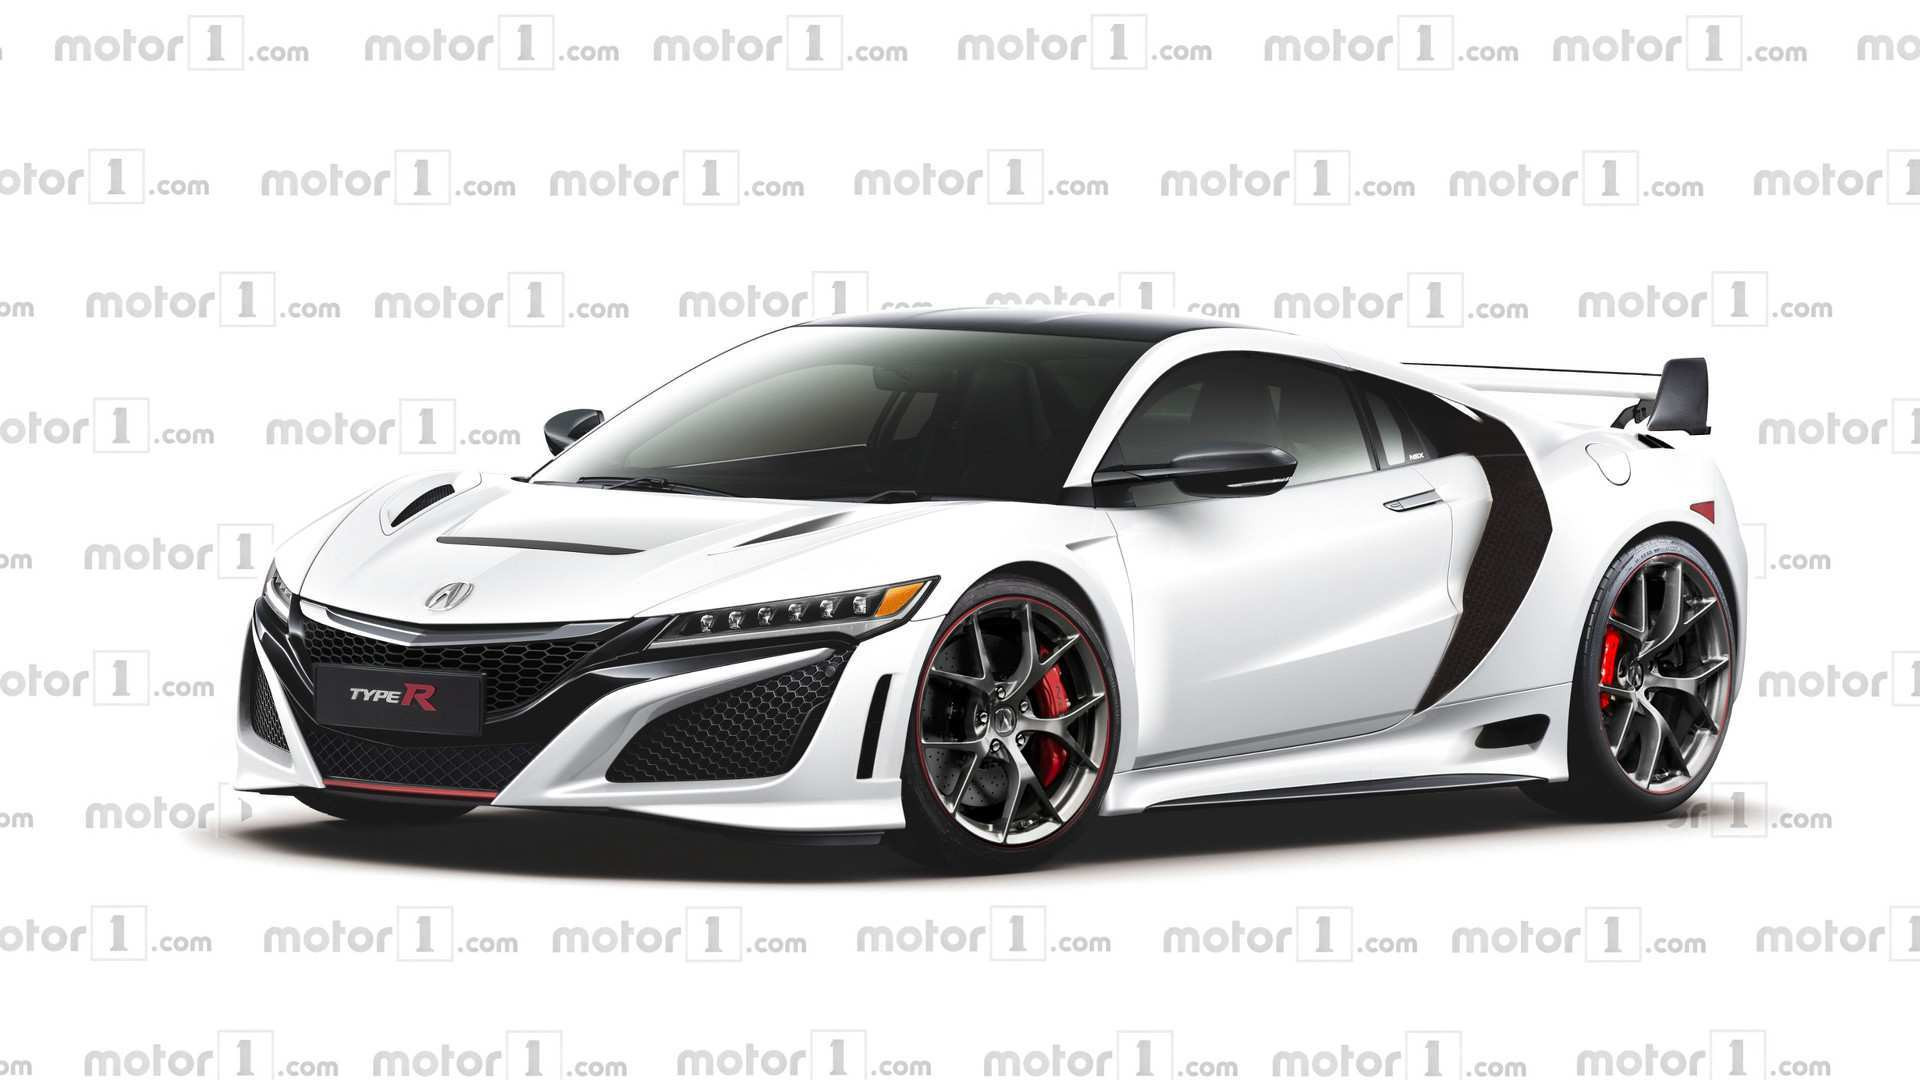 58 All New Acura Nsx 2020 Price Overview by Acura Nsx 2020 Price